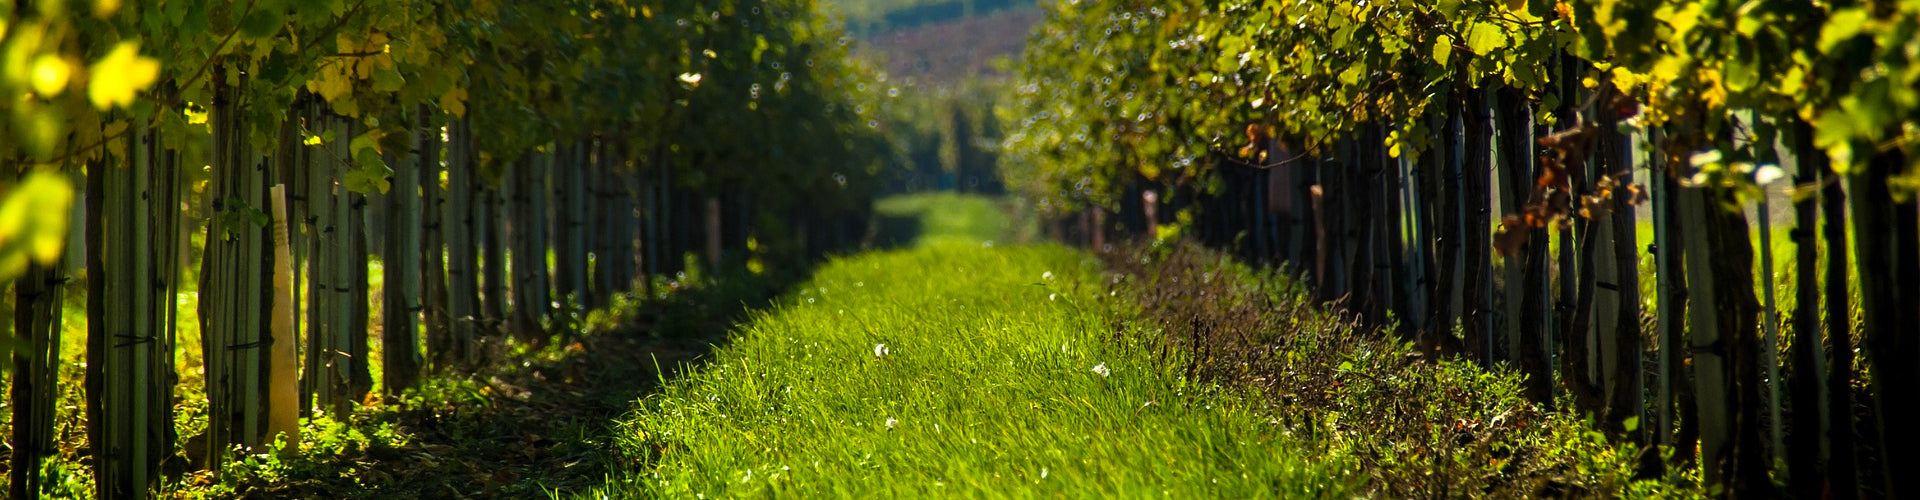 Organic Vineyard with Crop cover